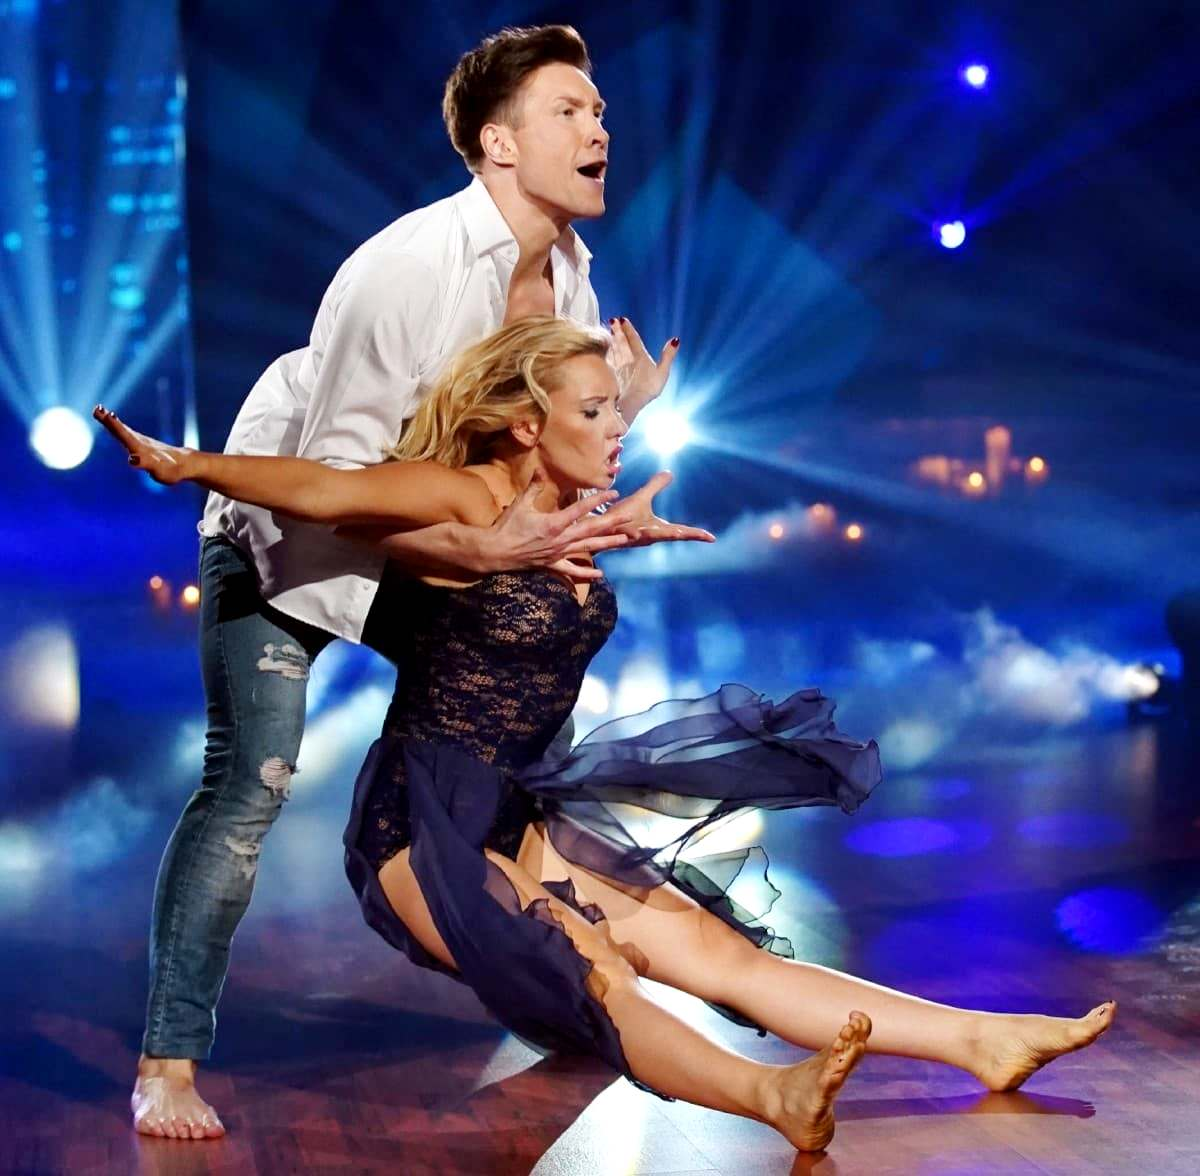 Evgeny Vinokurov - Evelyn Burdecki bei Let's dance 2019 am 5.4.2019